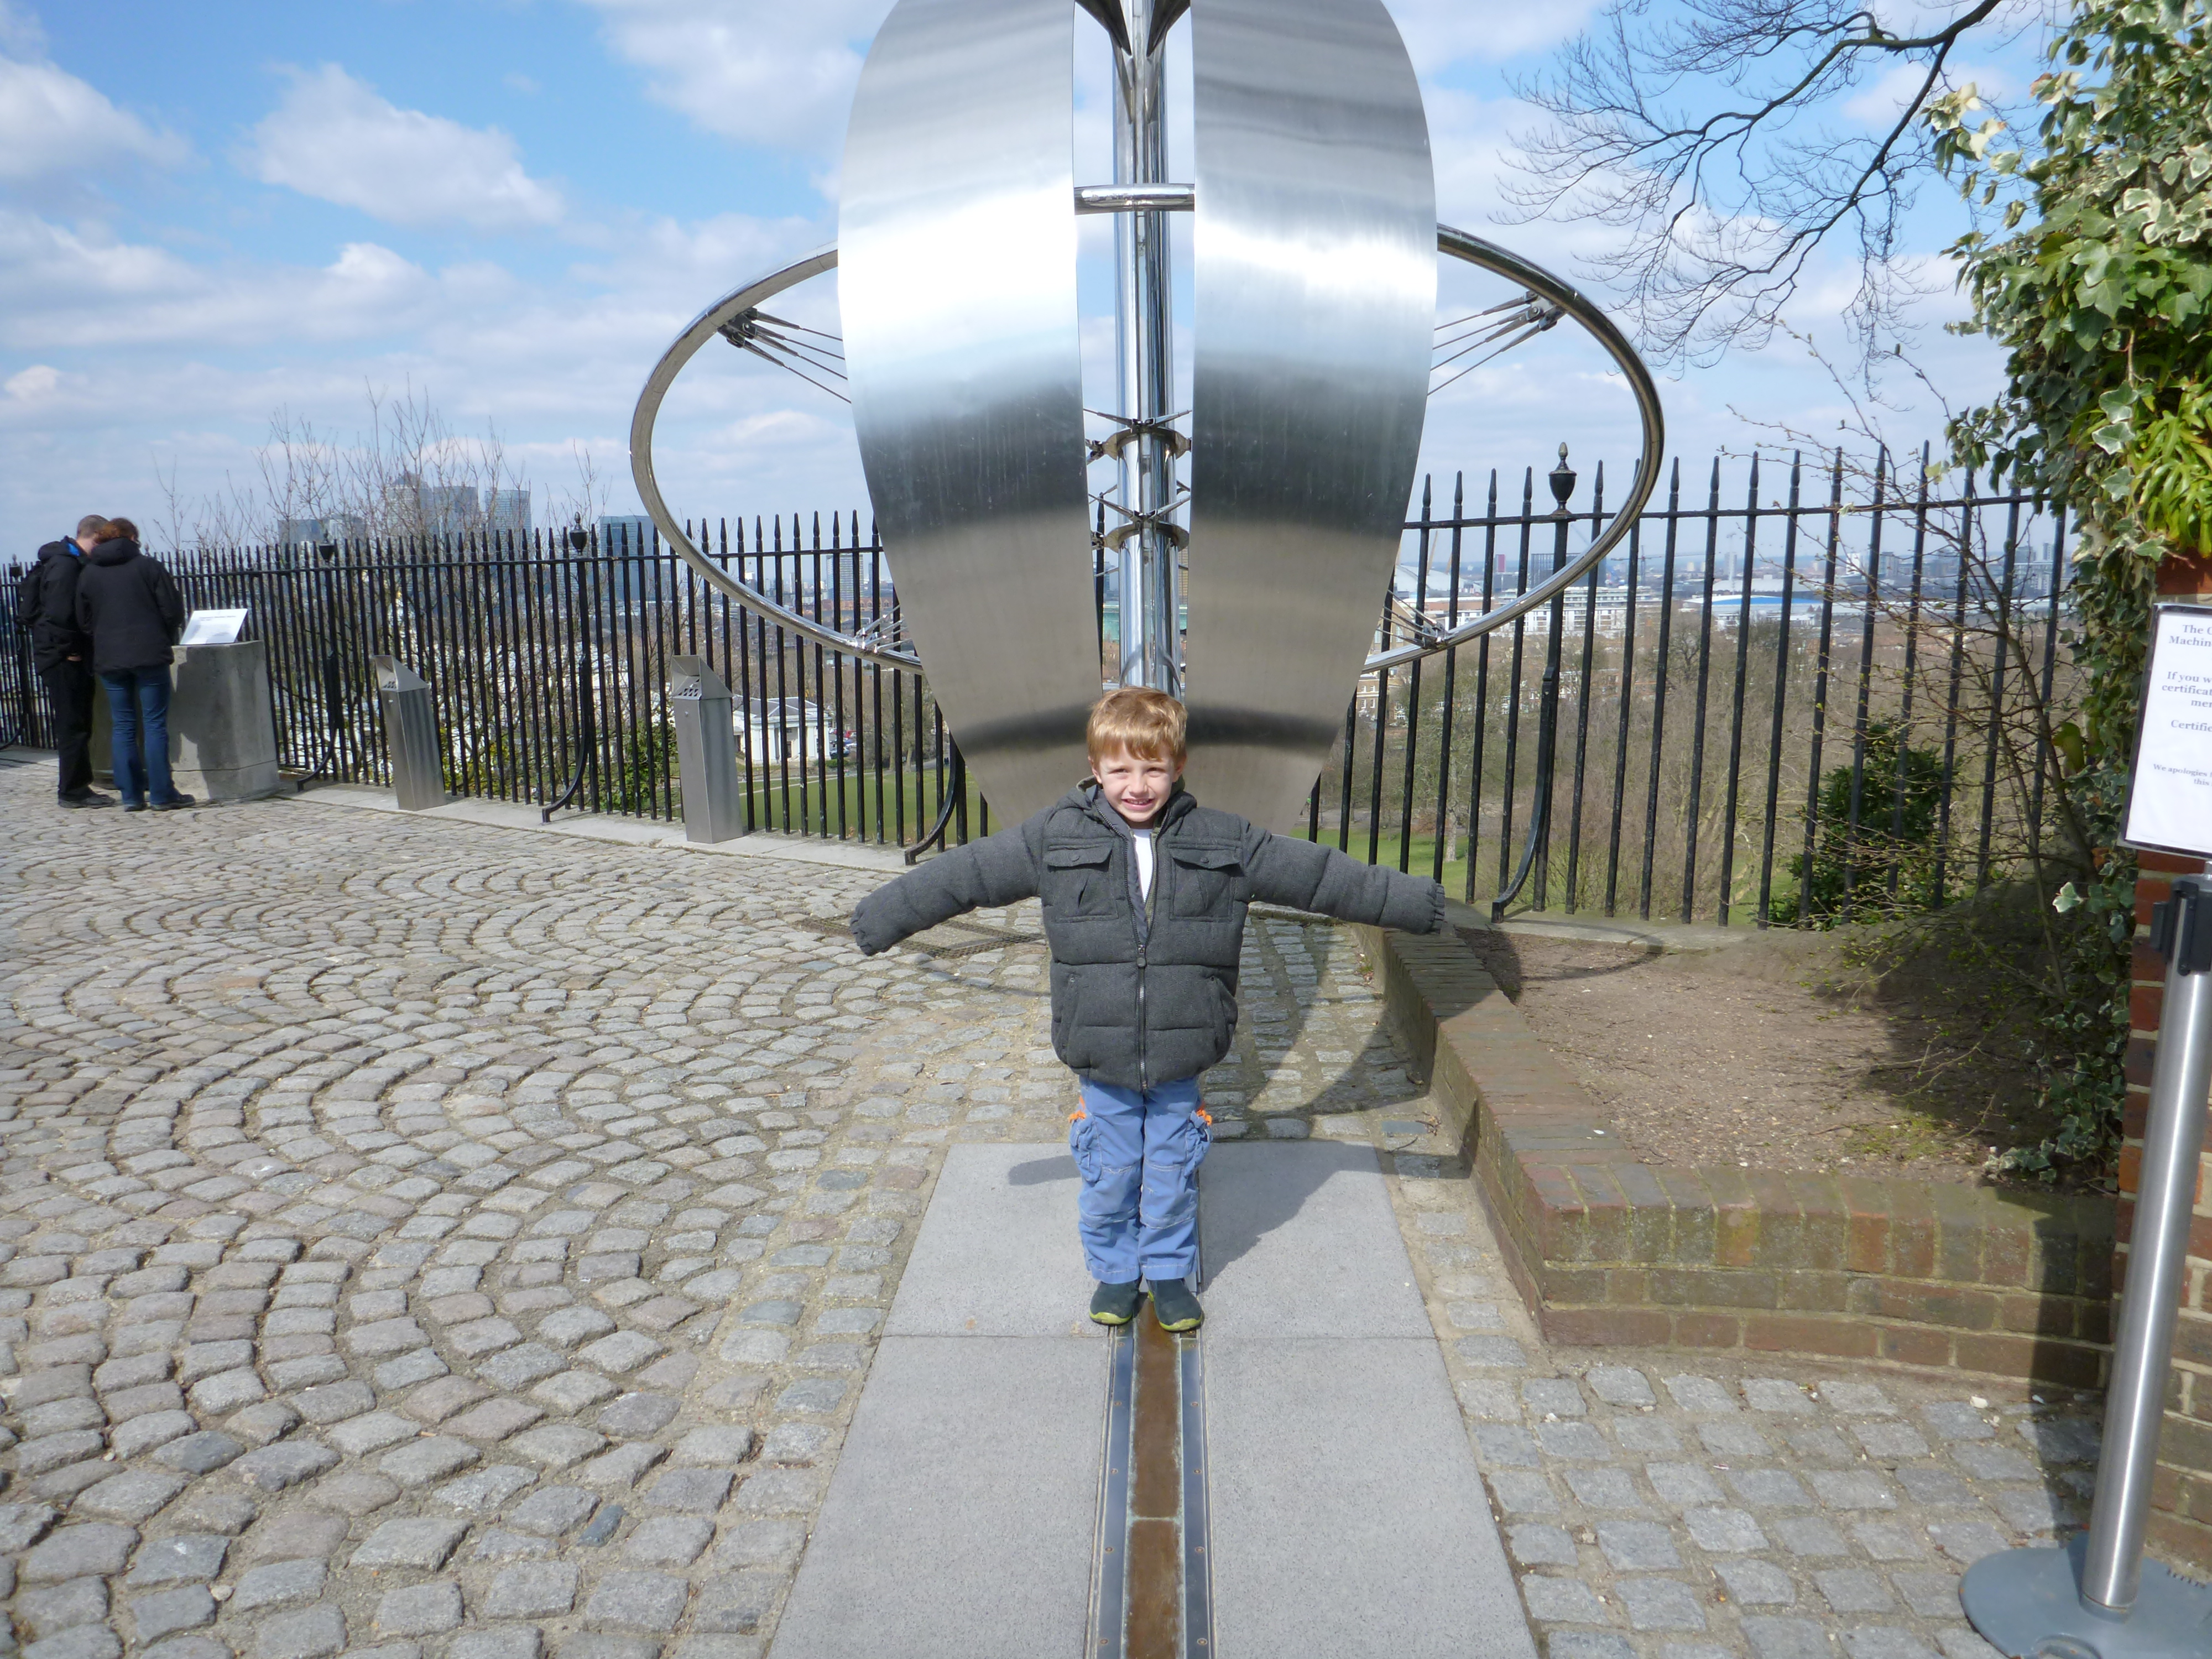 The International Date Line at Greenwich